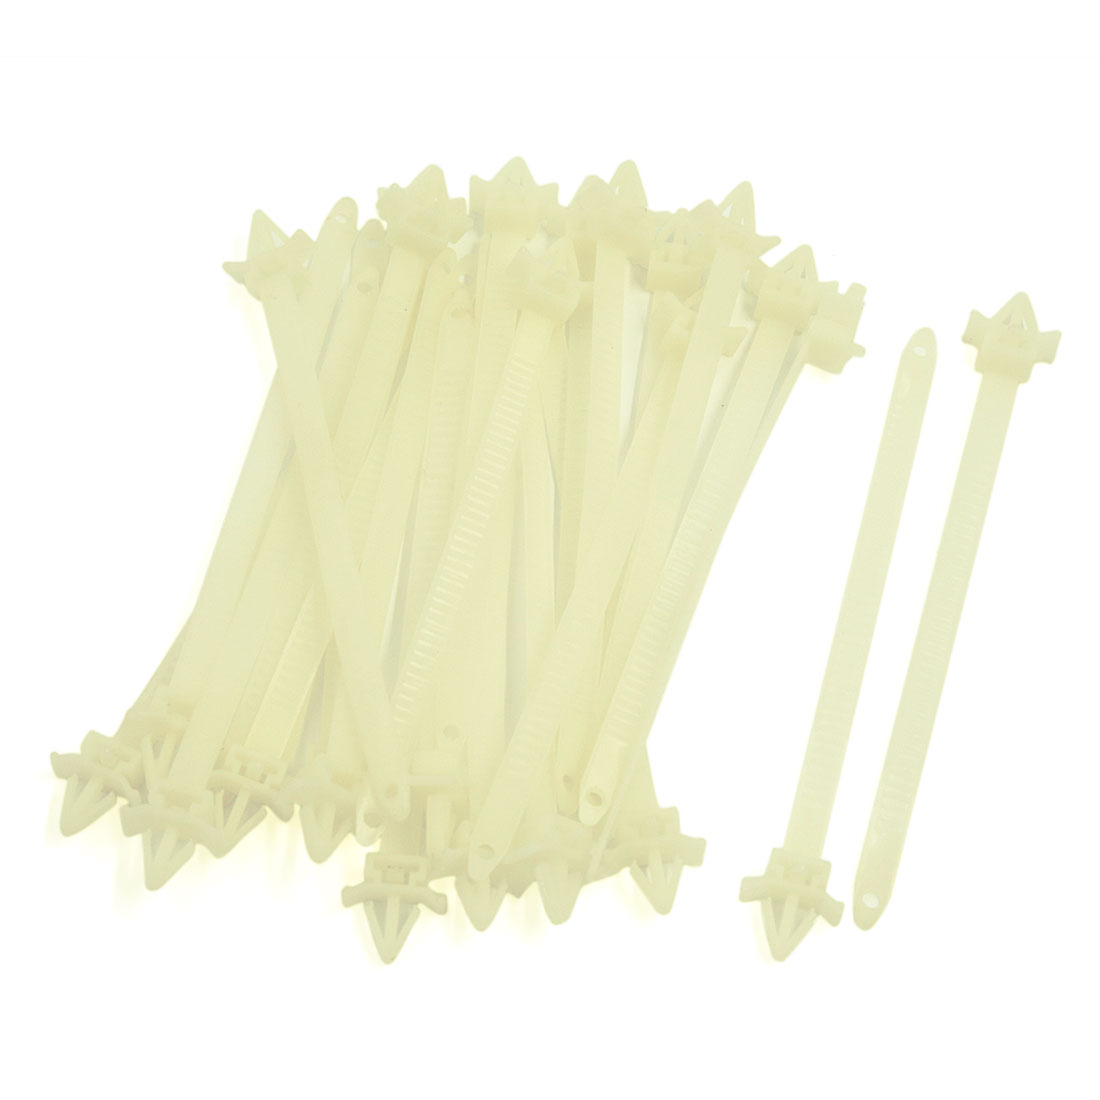 25pcs 10mm x 150mm Adjustable Nylon Push Mount Cable Ties Zip Wire Fasten - Random Color Beige to White